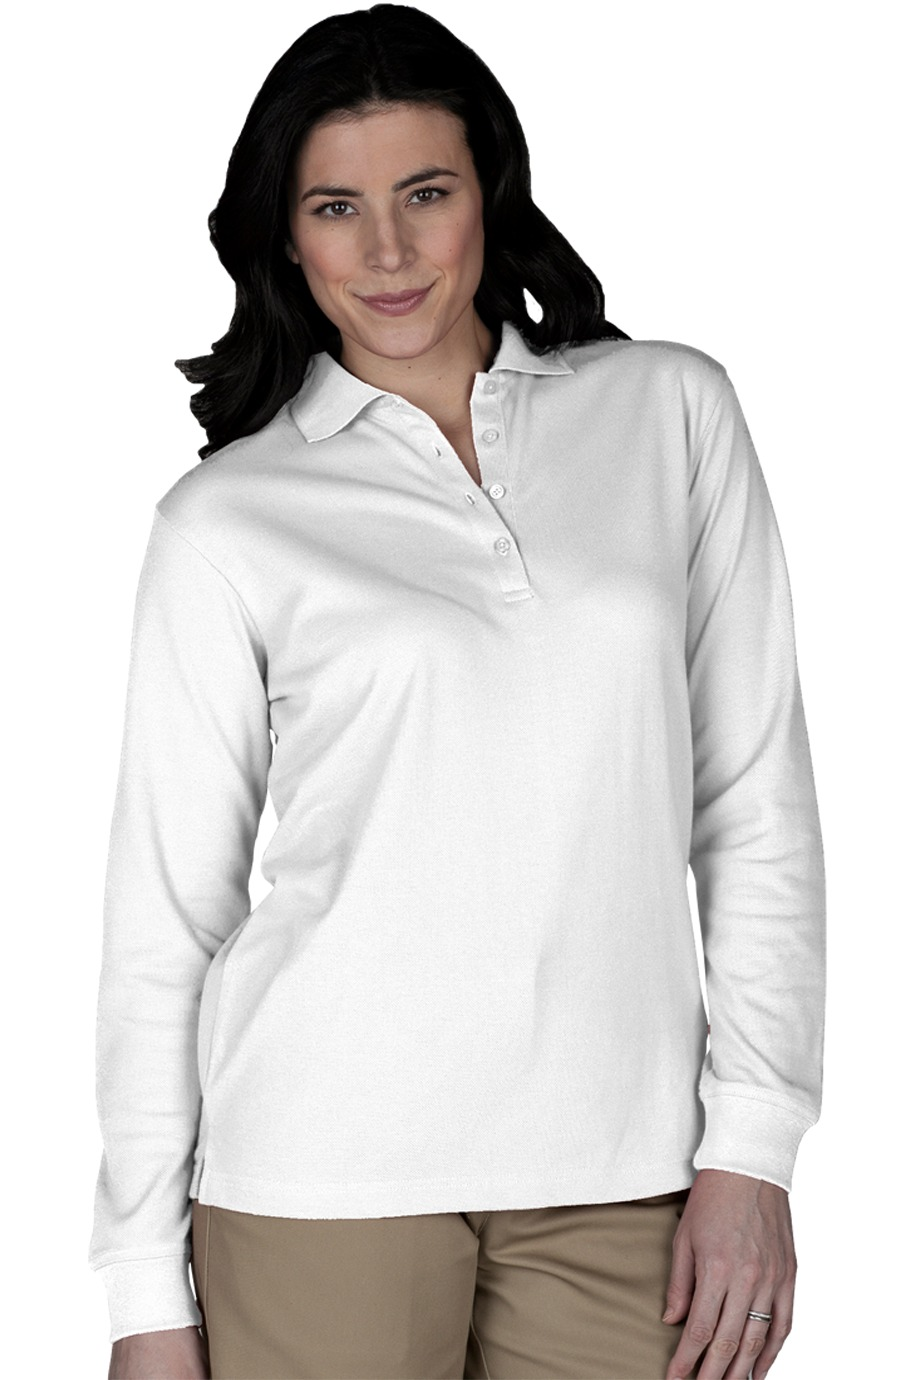 Edwards Garment 5515 - Women's Long Sleeve Pique Polo